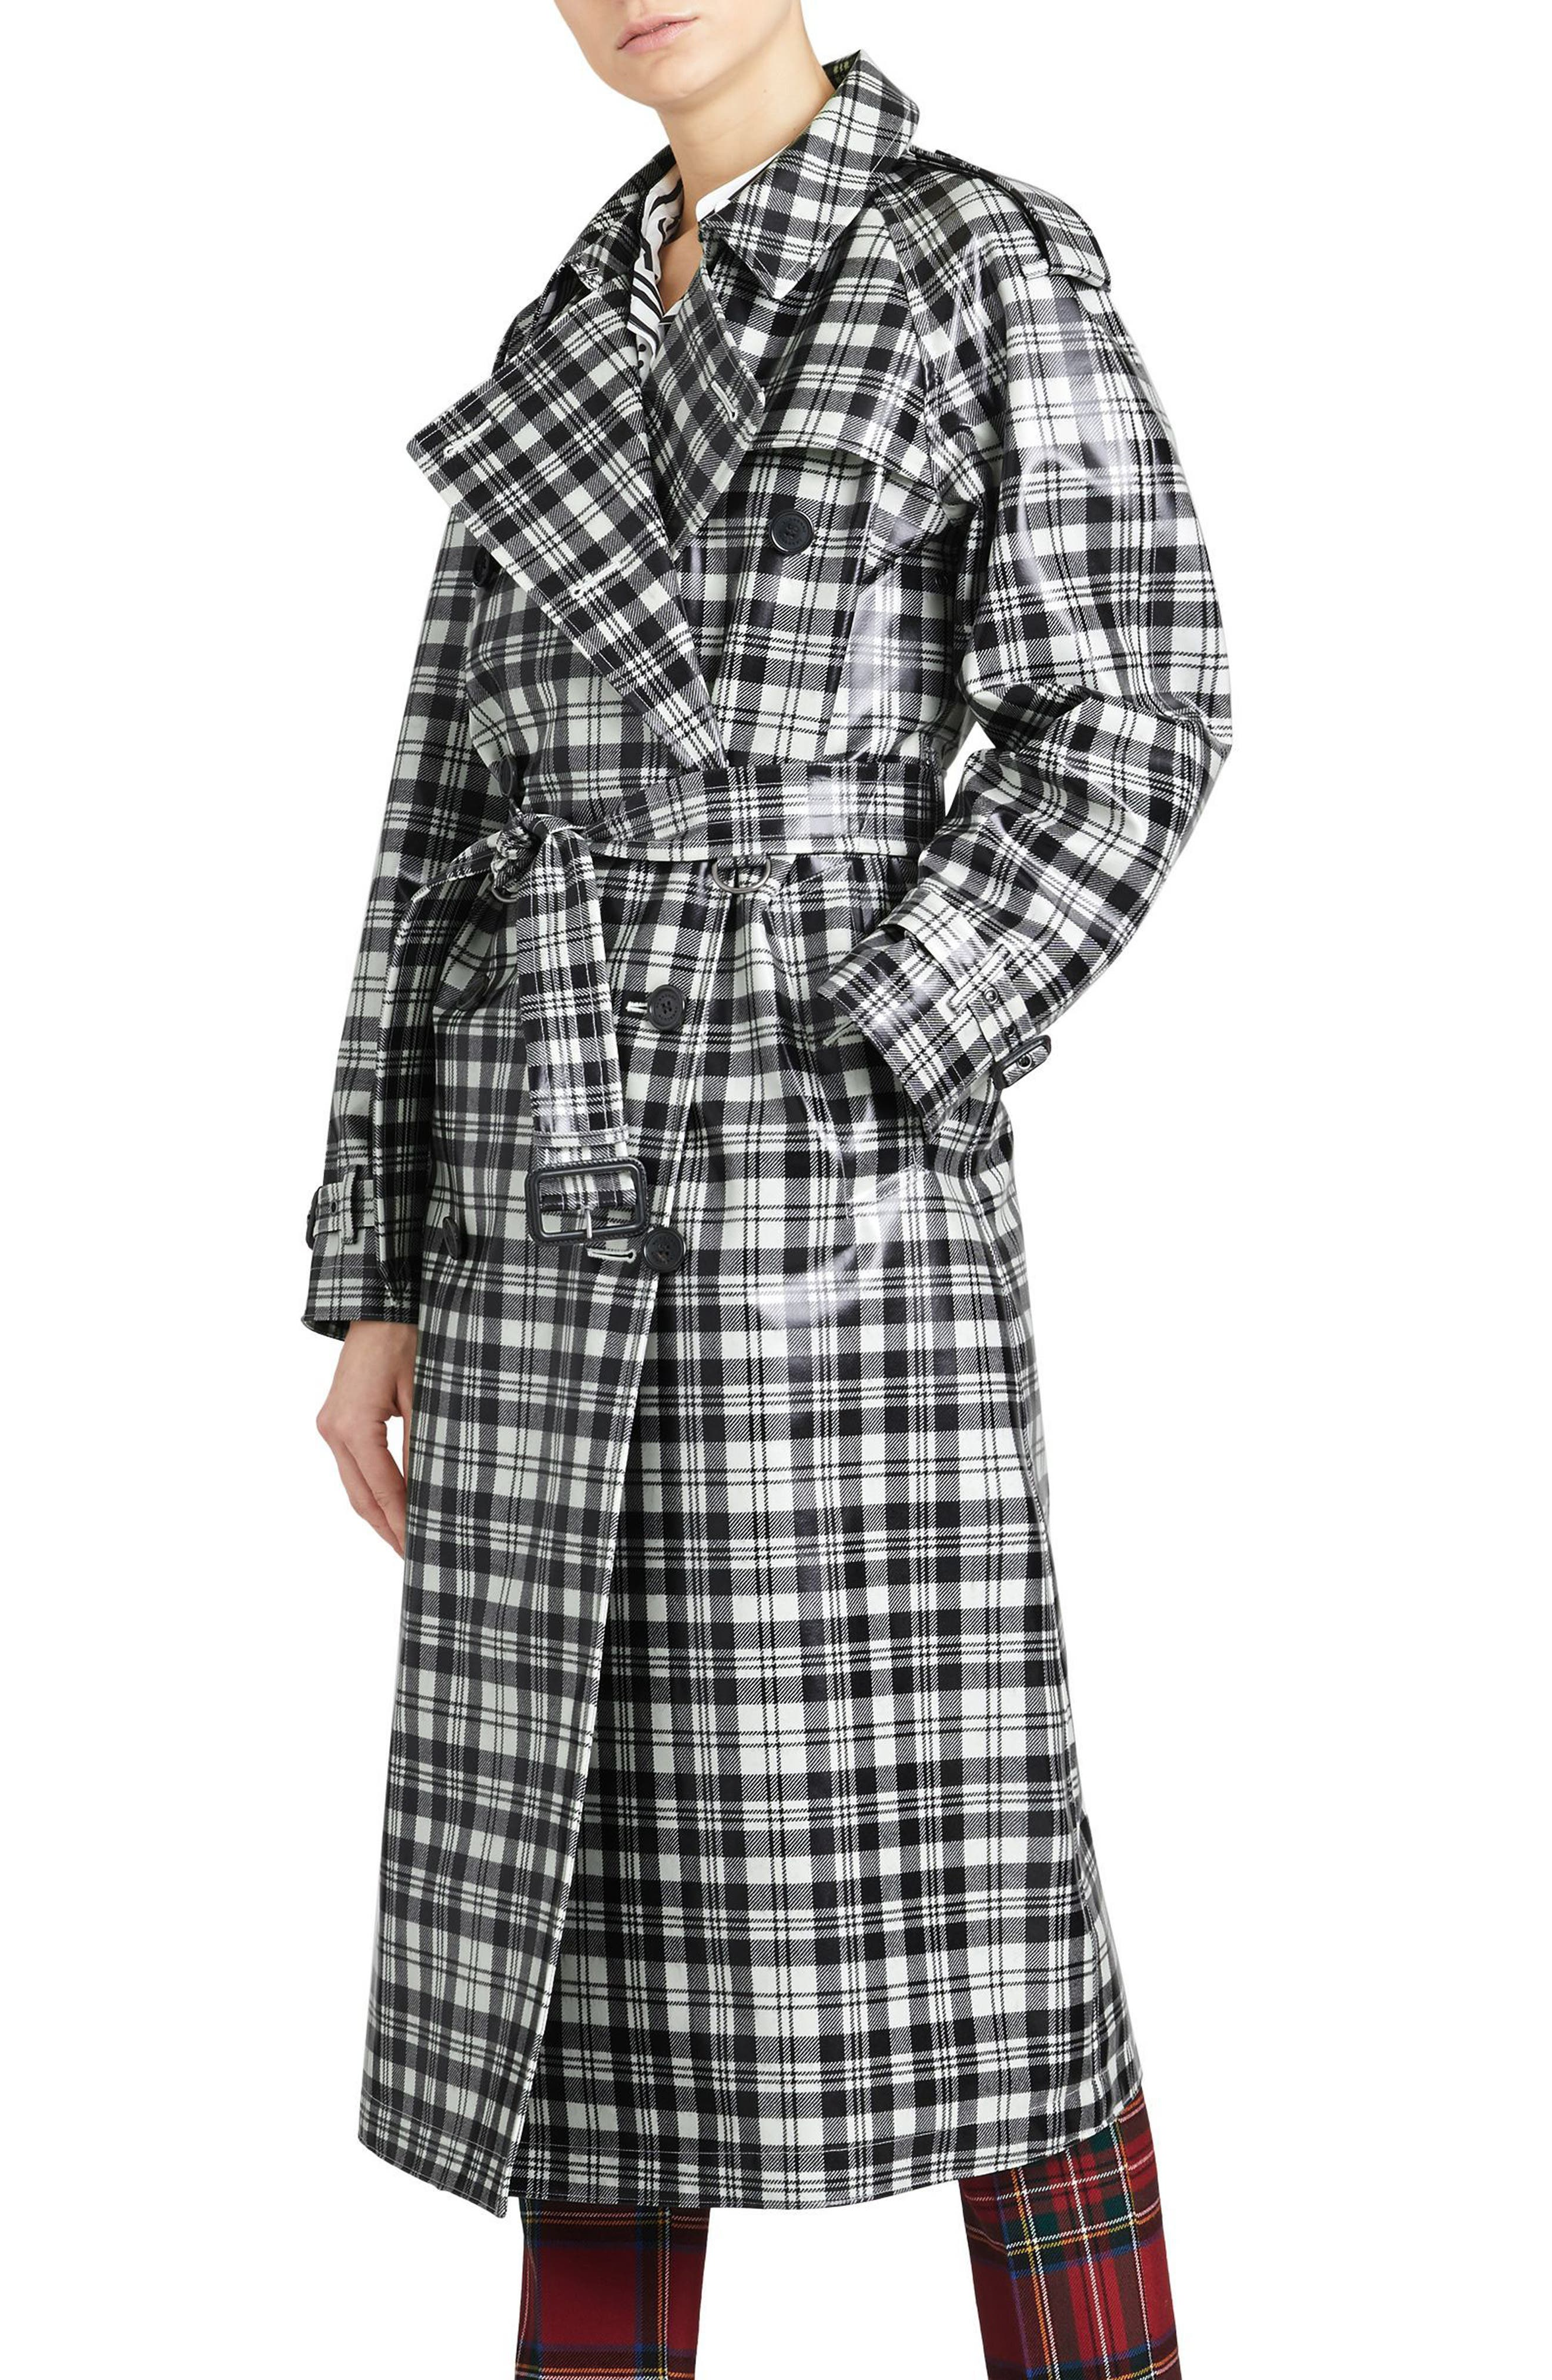 Eastheath Plaid Coated Wool Trench Coat,                             Alternate thumbnail 3, color,                             Black/ White